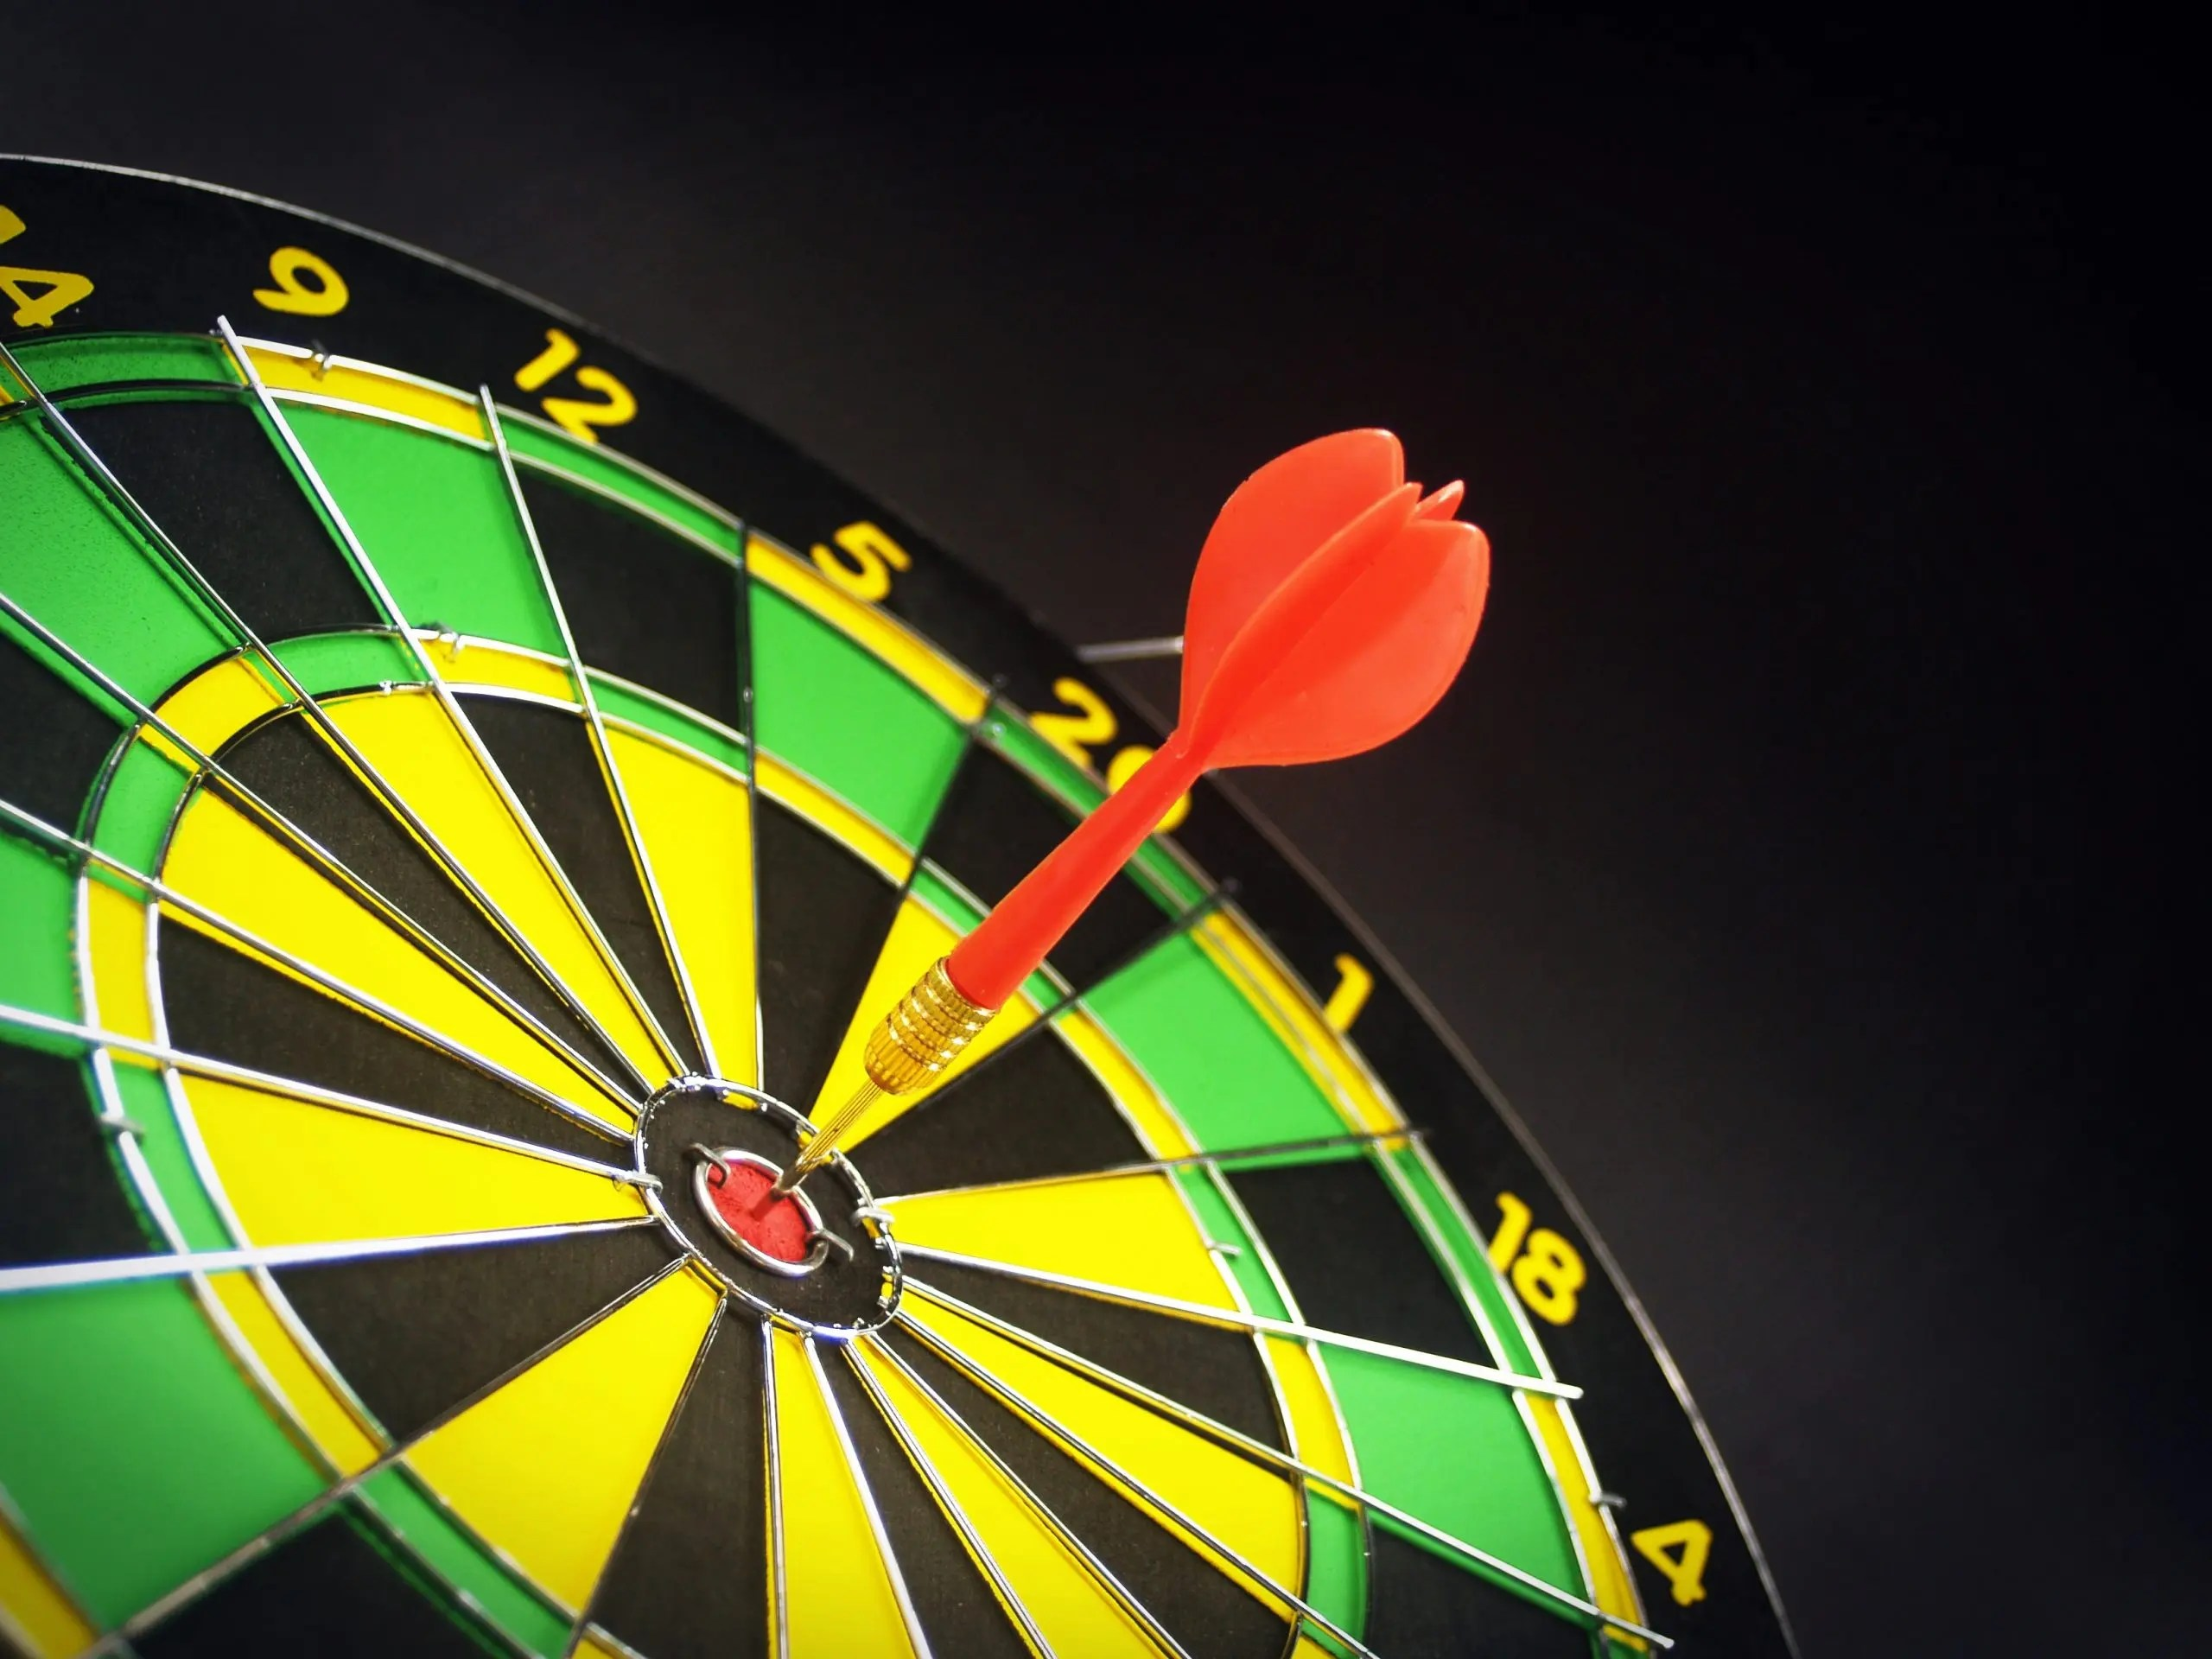 Image of Dart in the bullseye of a target - symbolizing the goal of a good graduation rate